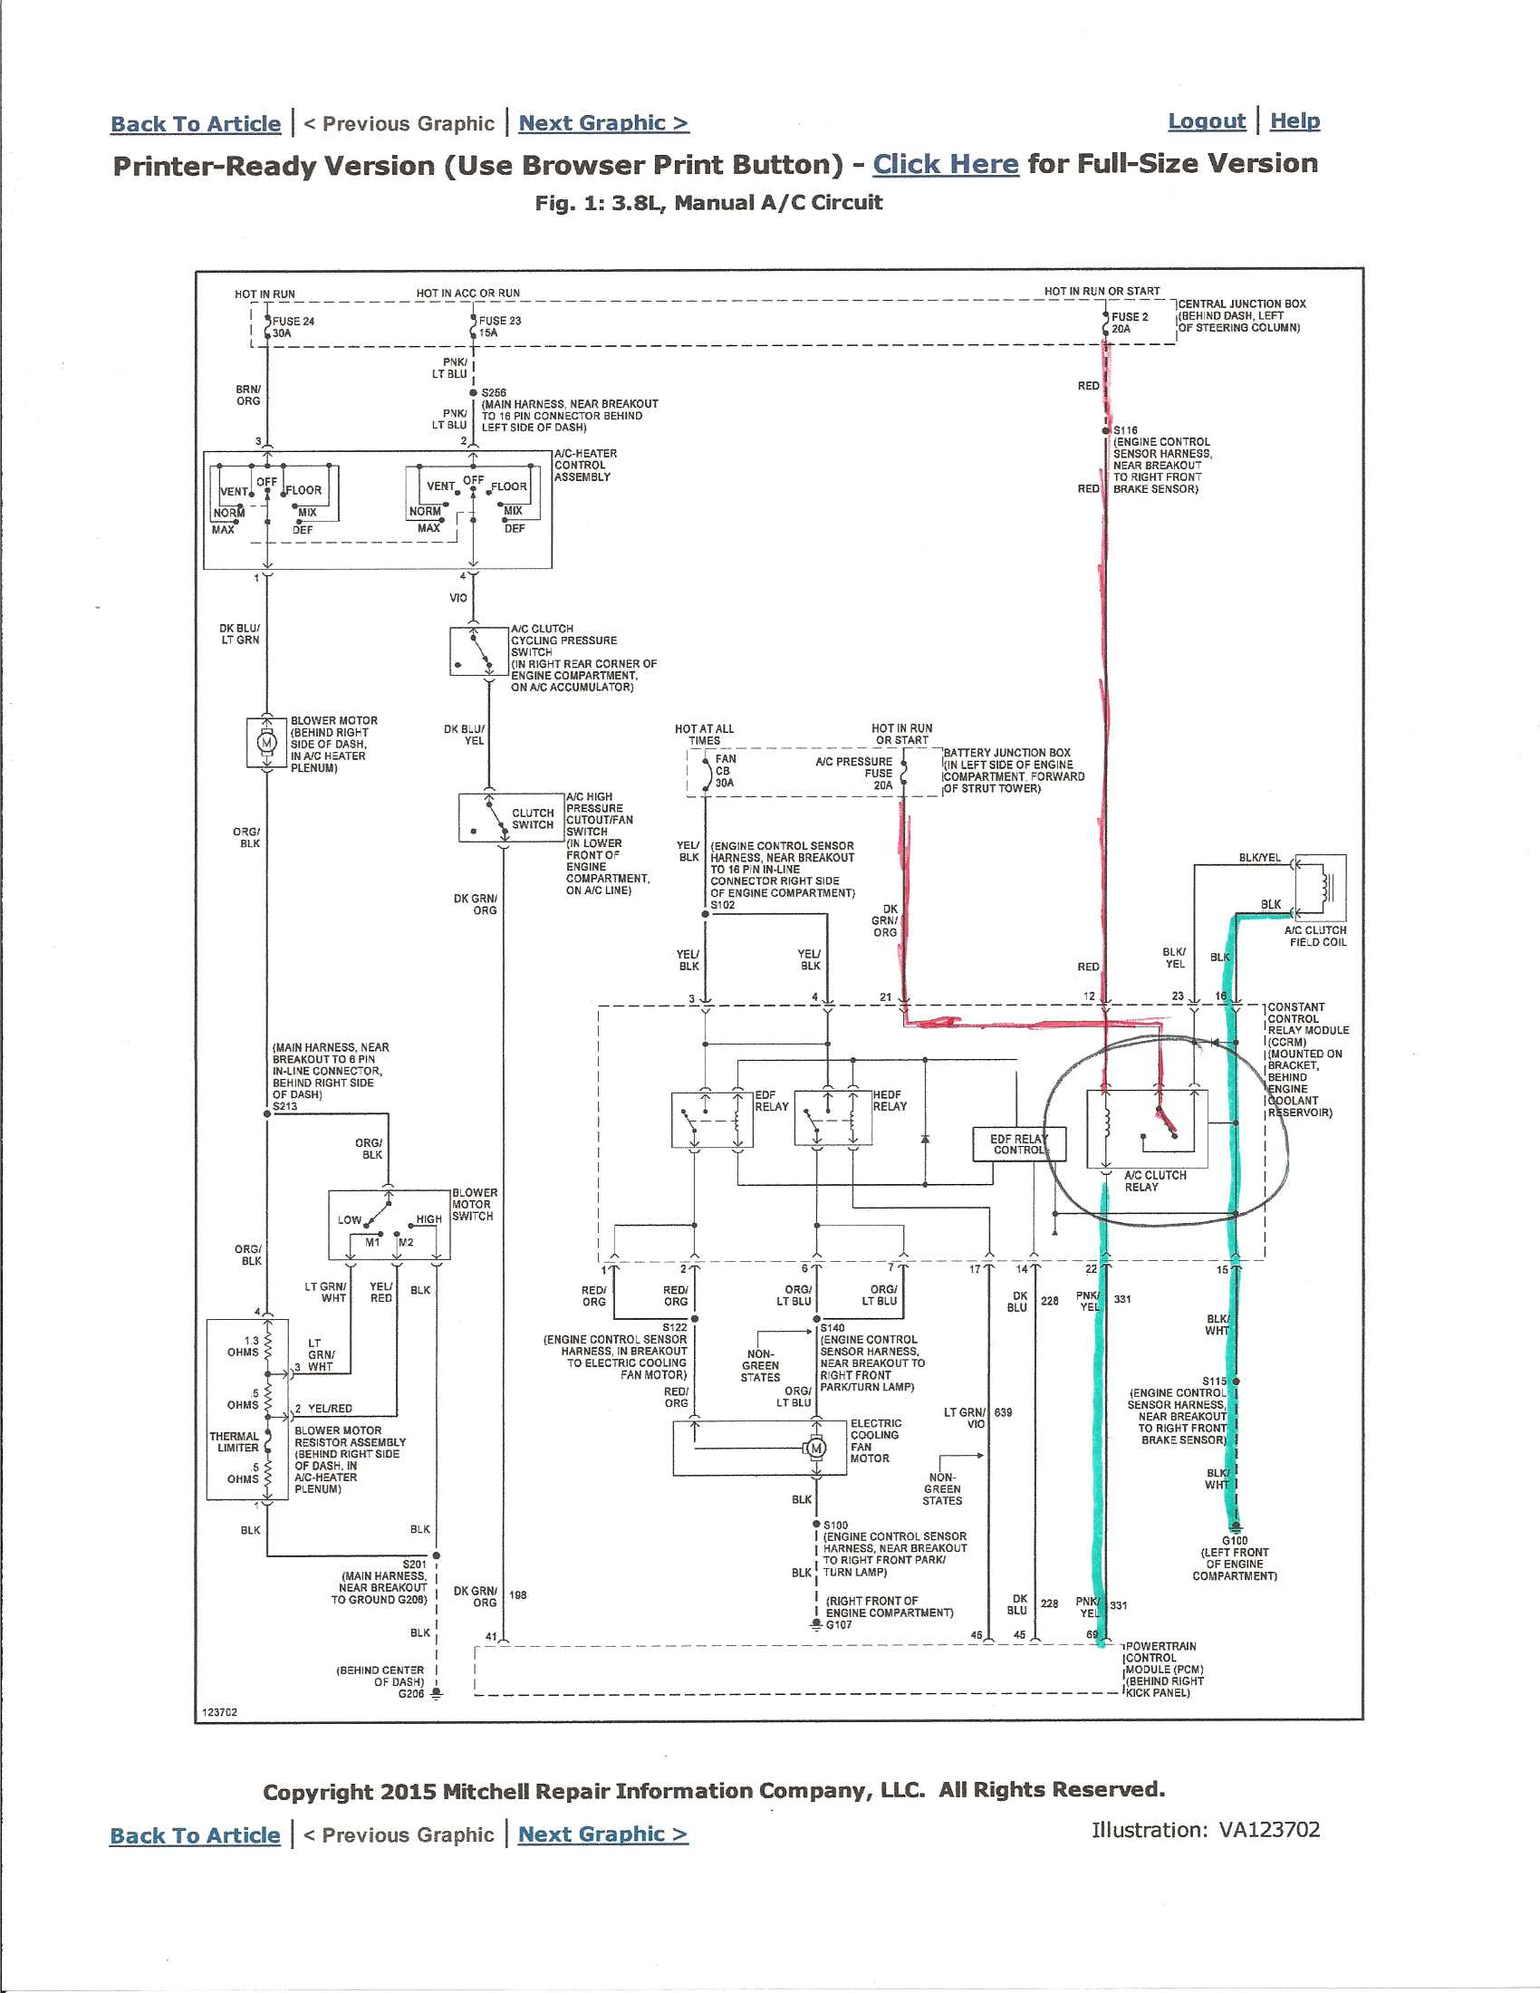 mustang_ac_107aa4e54b0423108192548363db11147e175cf3  Mustang Ac Wiring Diagram on 2000 mustang wire harness, 2000 mustang wiper motor, 2000 ford 3.8 engine diagram, 2000 mustang stereo wiring, bmw wiring diagram, 2000 mustang alternator wiring, 2000 mustang tires, ford wiring diagram, 2000 mustang battery, mustang 4.6 engine diagram, 2000 mustang troubleshooting, 2000 mustang charging system, 2000 mustang thermostat, 2000 mustang steering, 2000 mustang owners manual, chevrolet wiring diagram, 2000 mustang jacking points, 2000 mustang repair, 2000 mustang solenoid, 2000 mustang firing order,